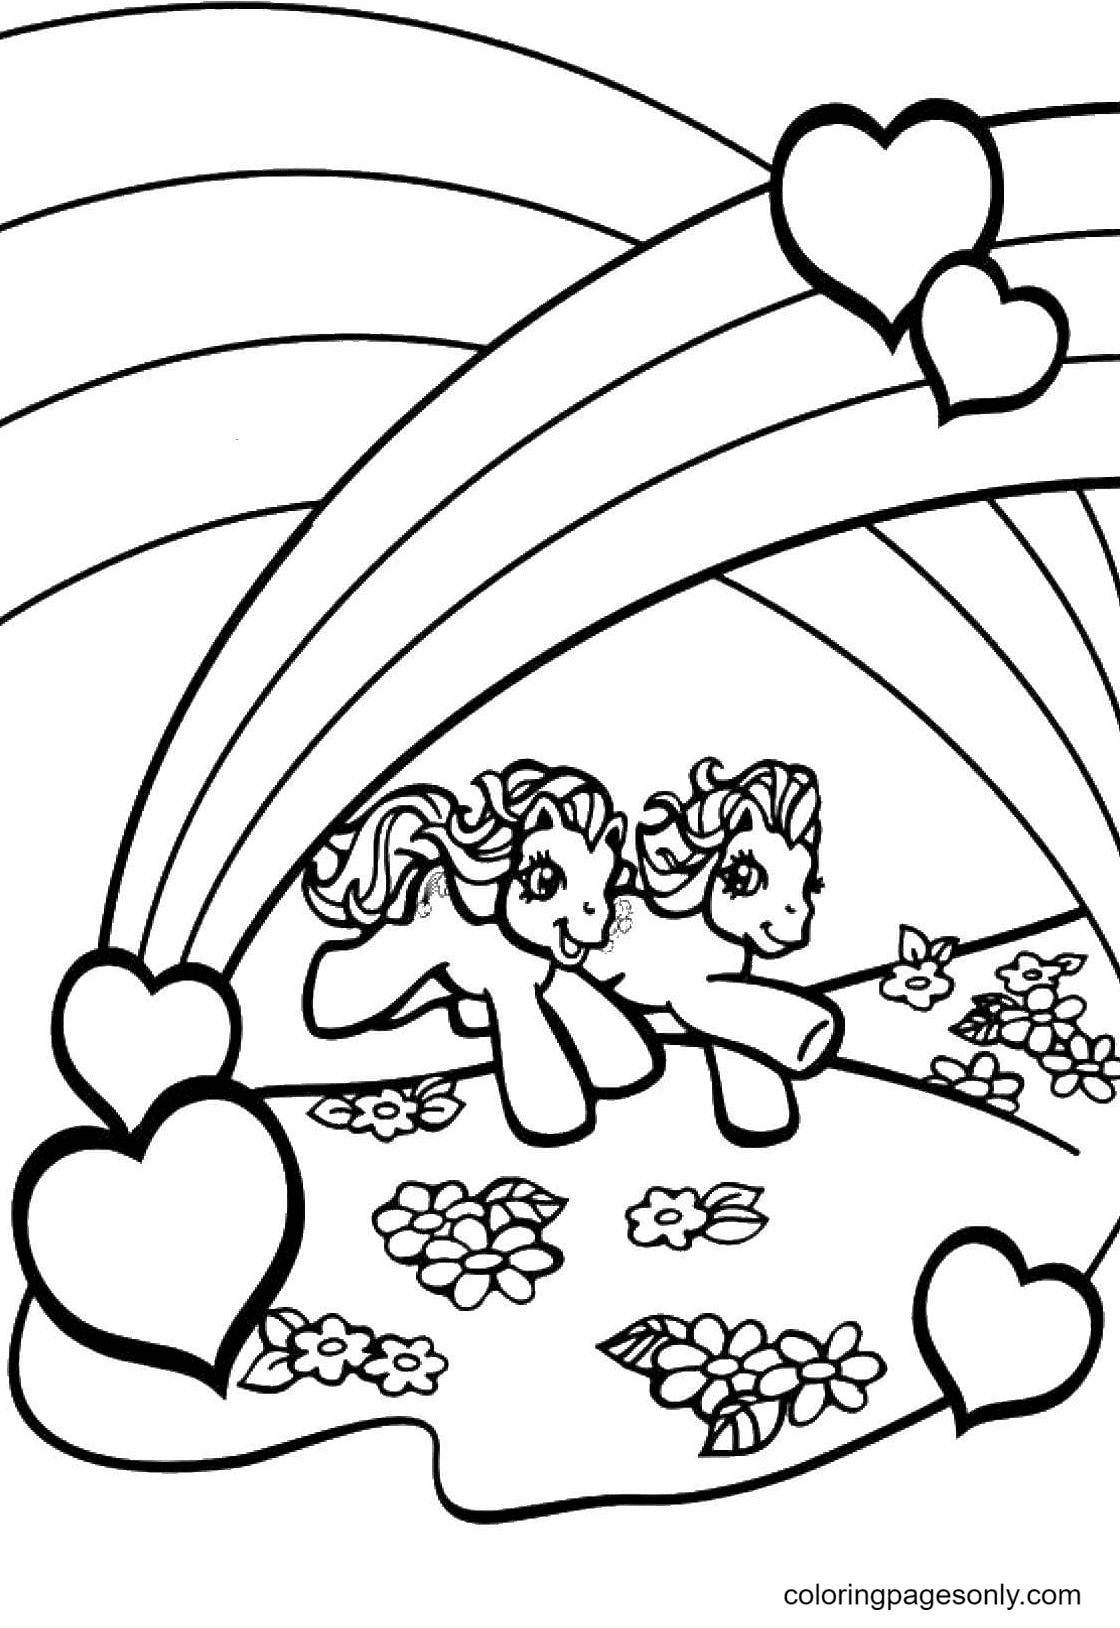 Ponies in Love and Rainbow Coloring Page